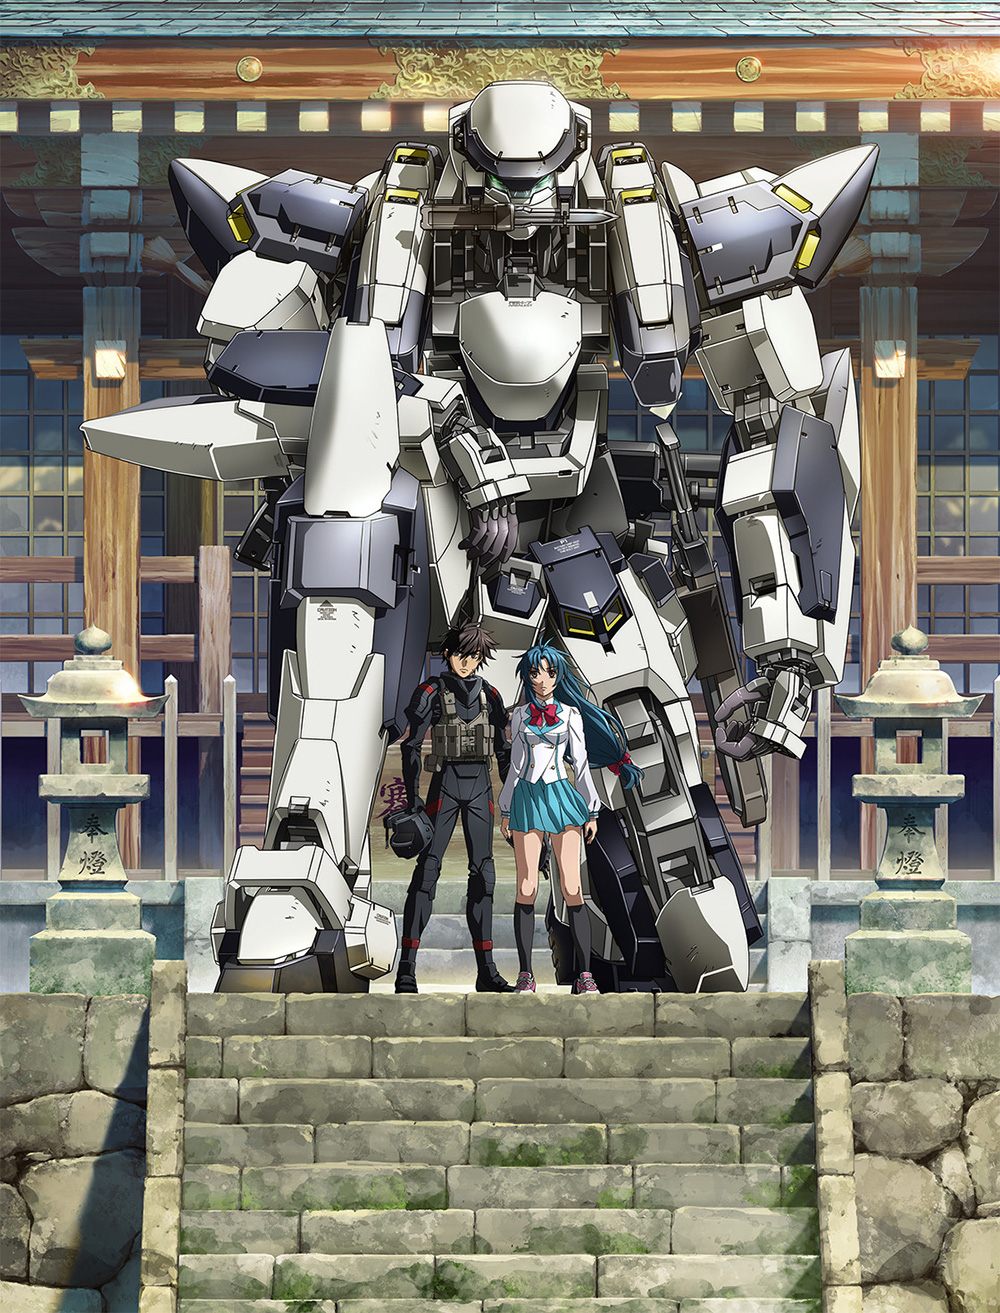 Full-Metal-Panic!-Invisible-Victory-Visual-02